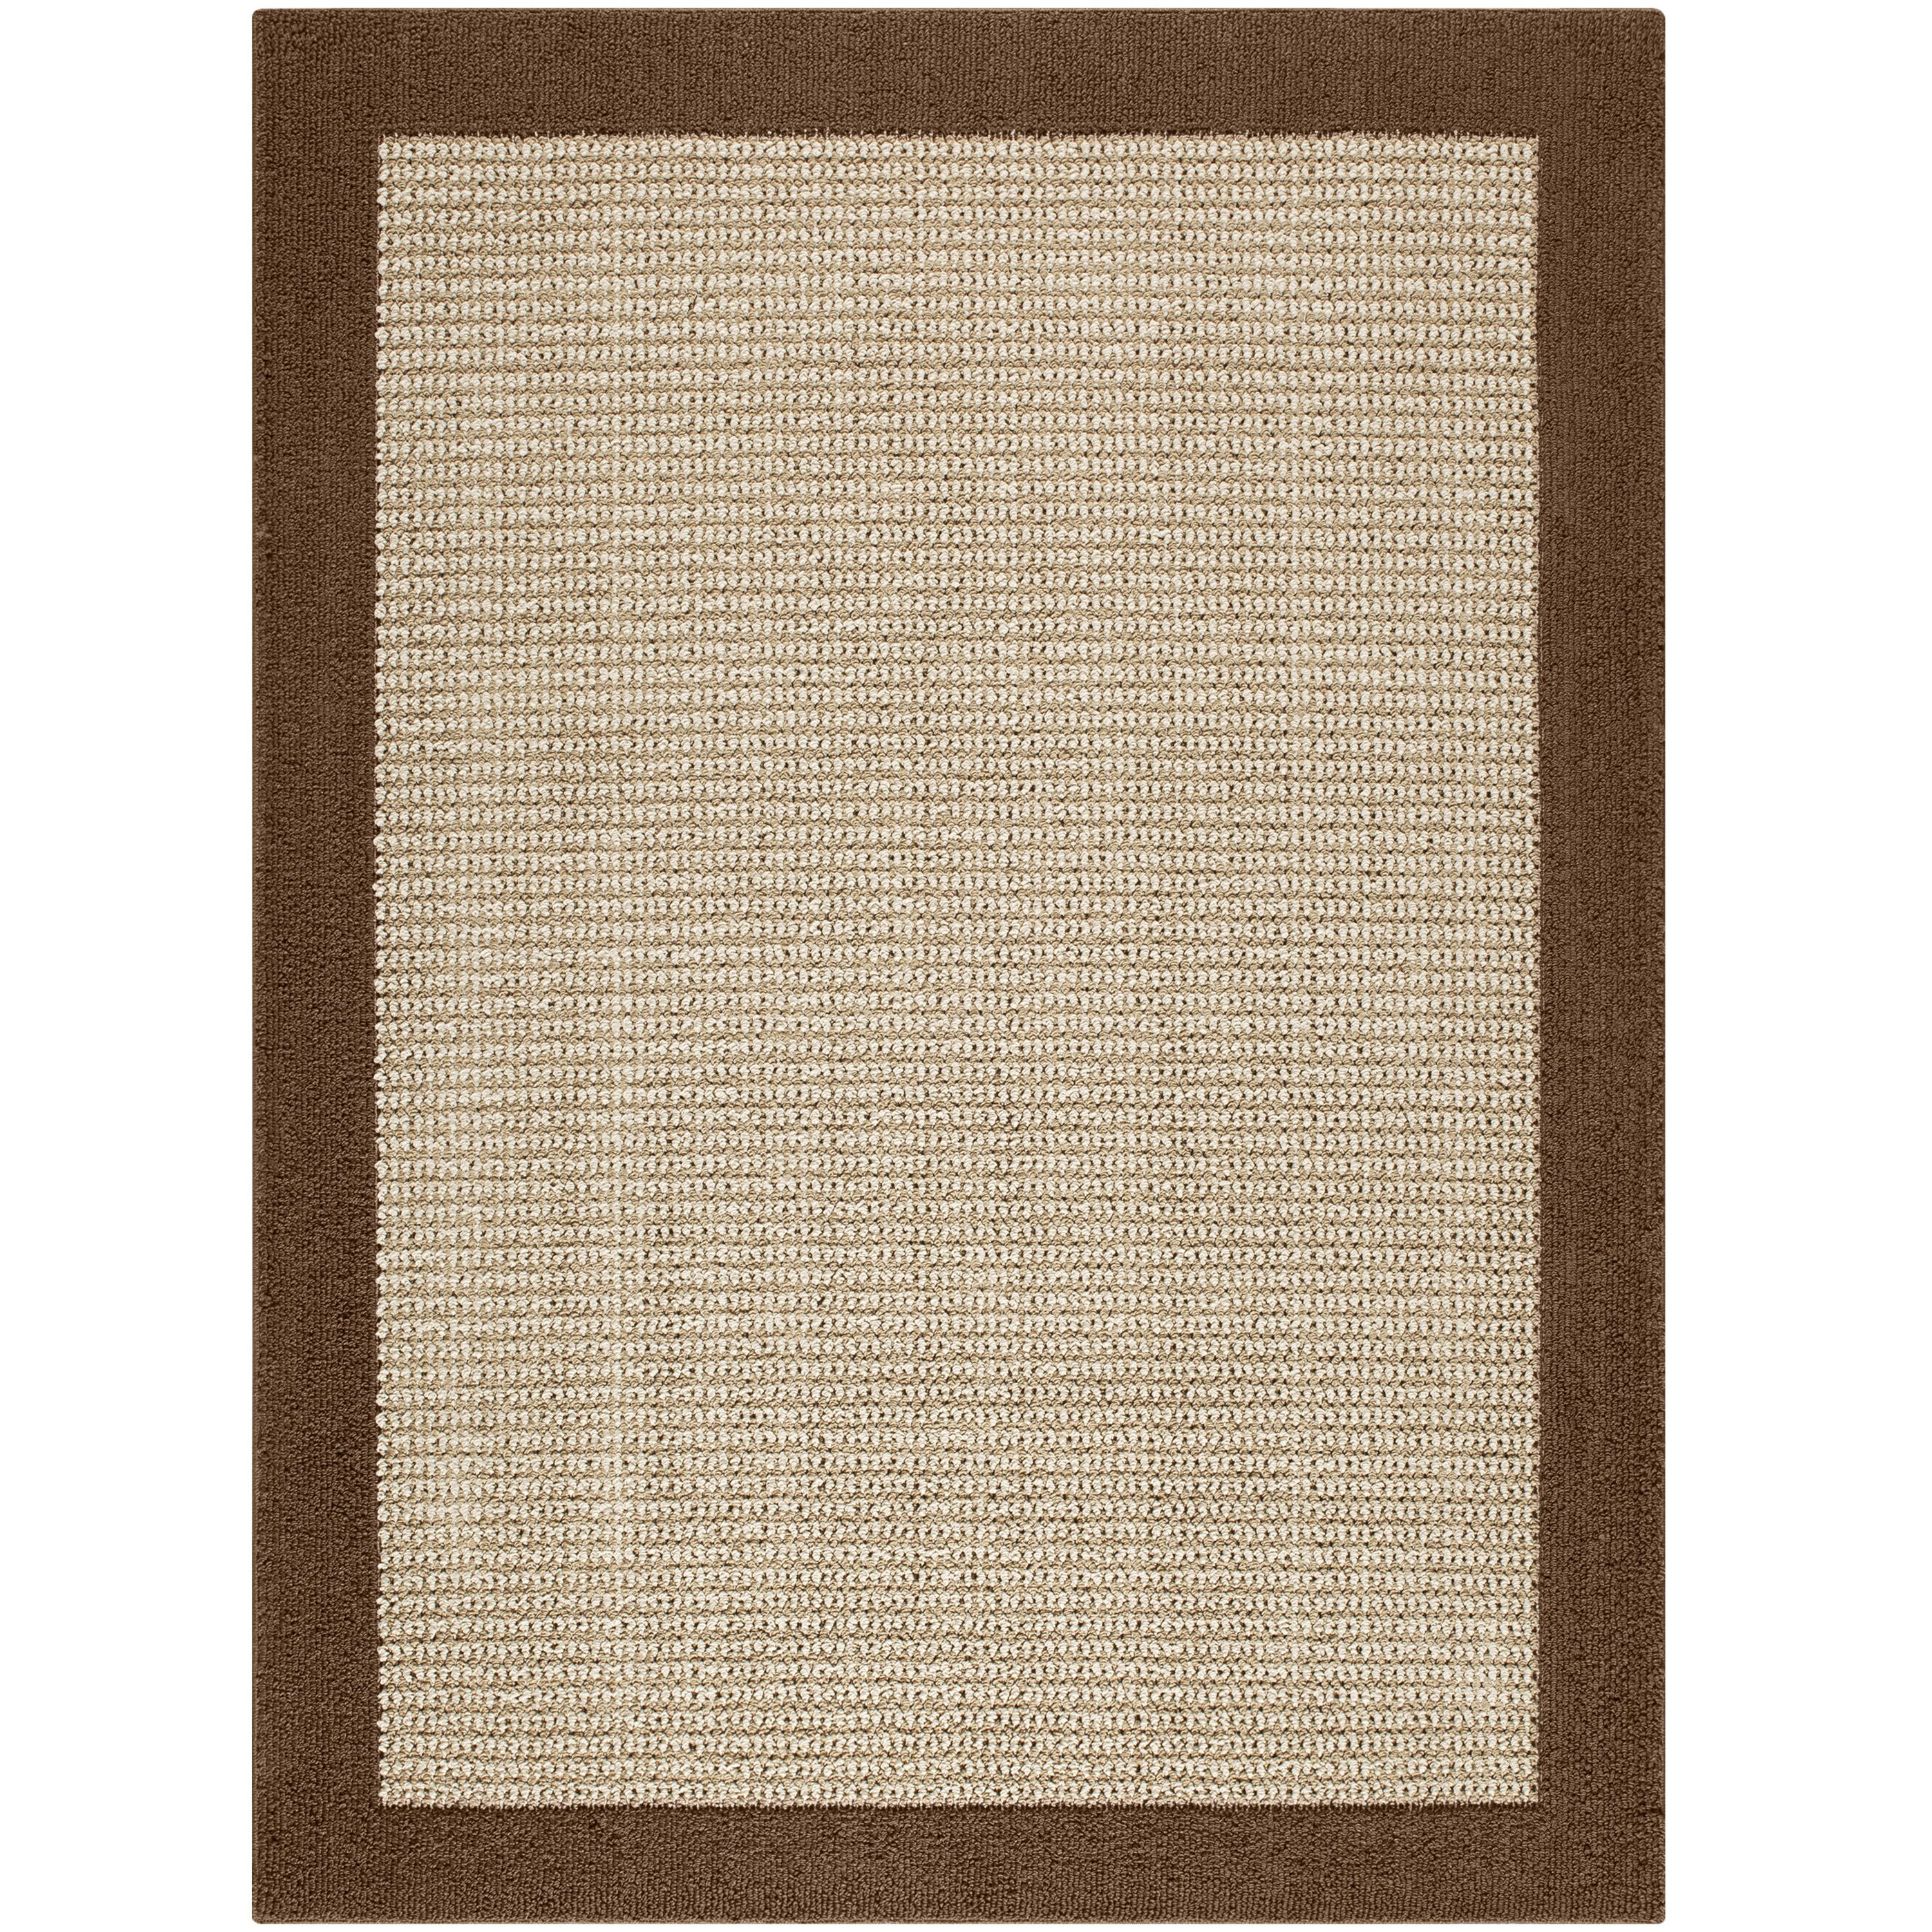 Home Faux Sisal Area Rugs Braided Area Rugs